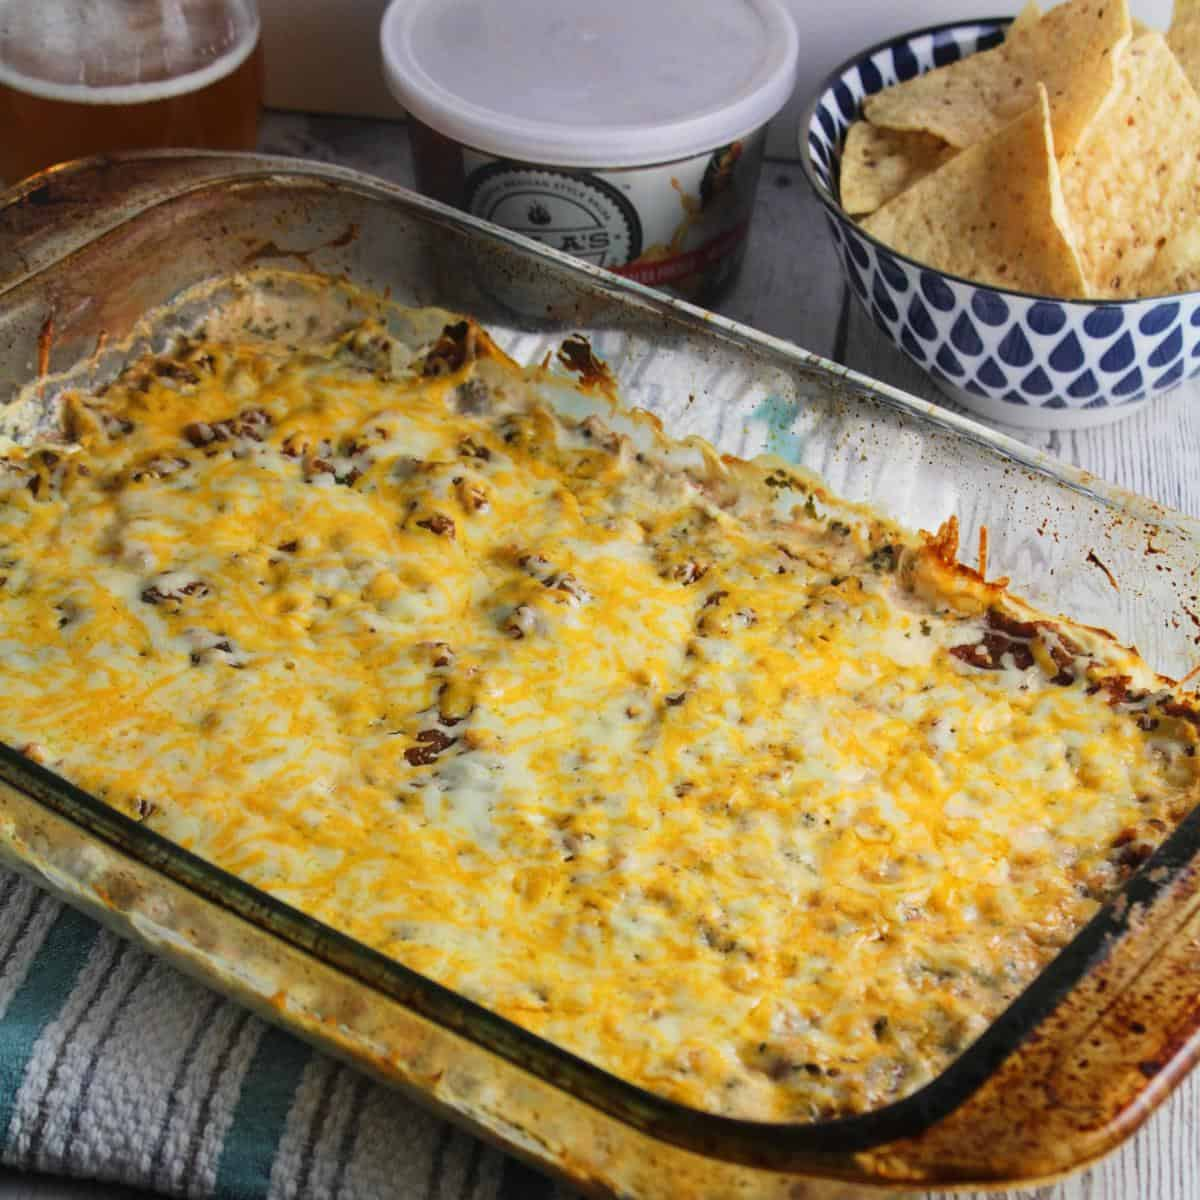 Easy Mexican Dip in a baking dish, with tortilla chips in the background.